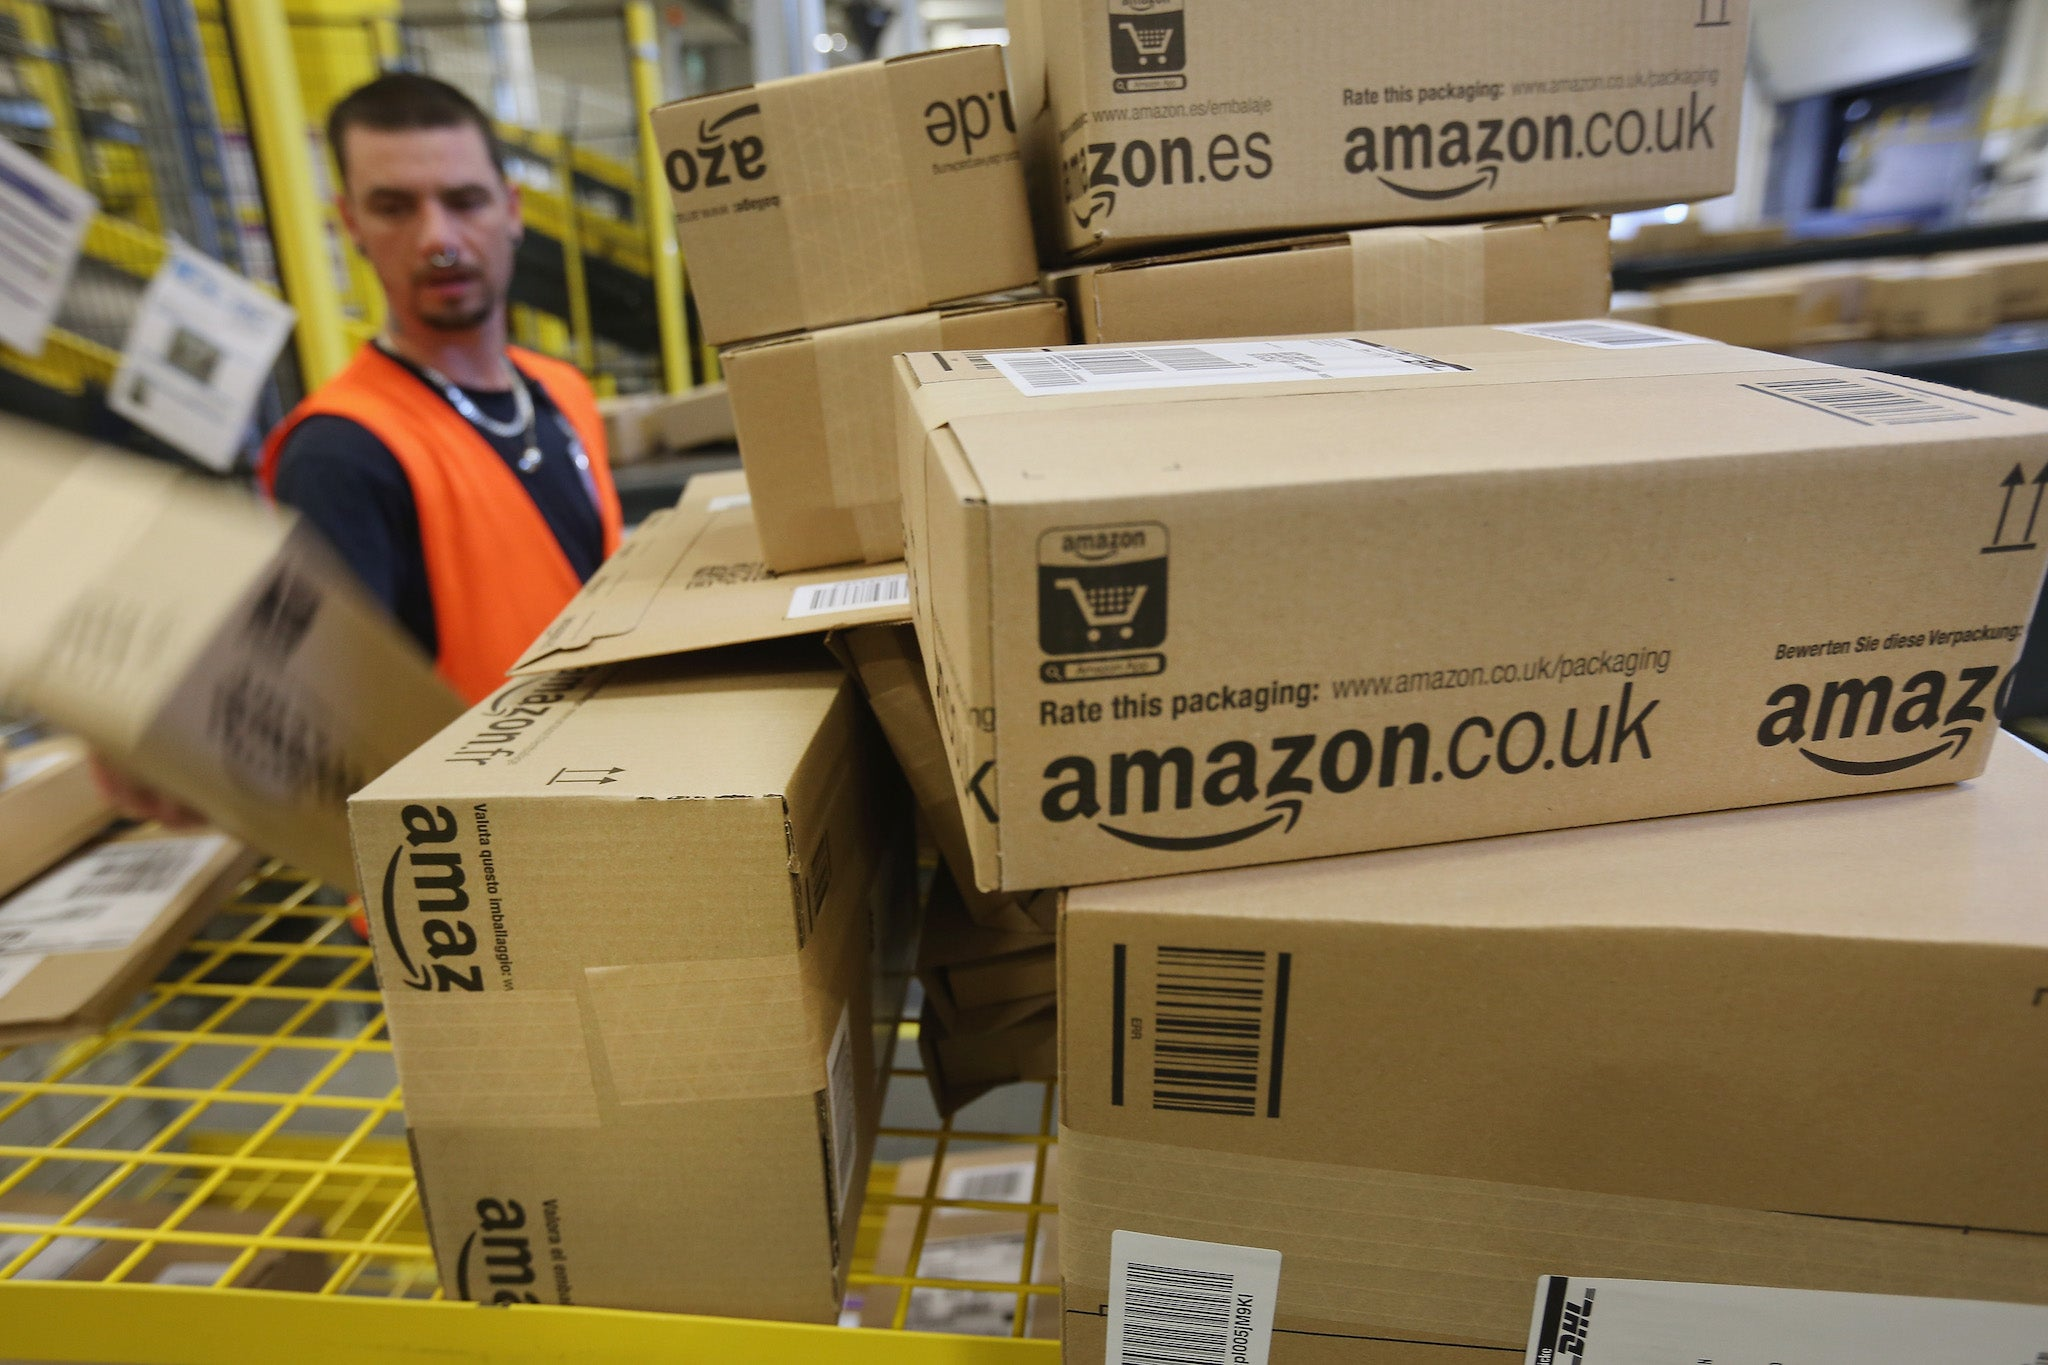 Amazon isn't working properly for some people